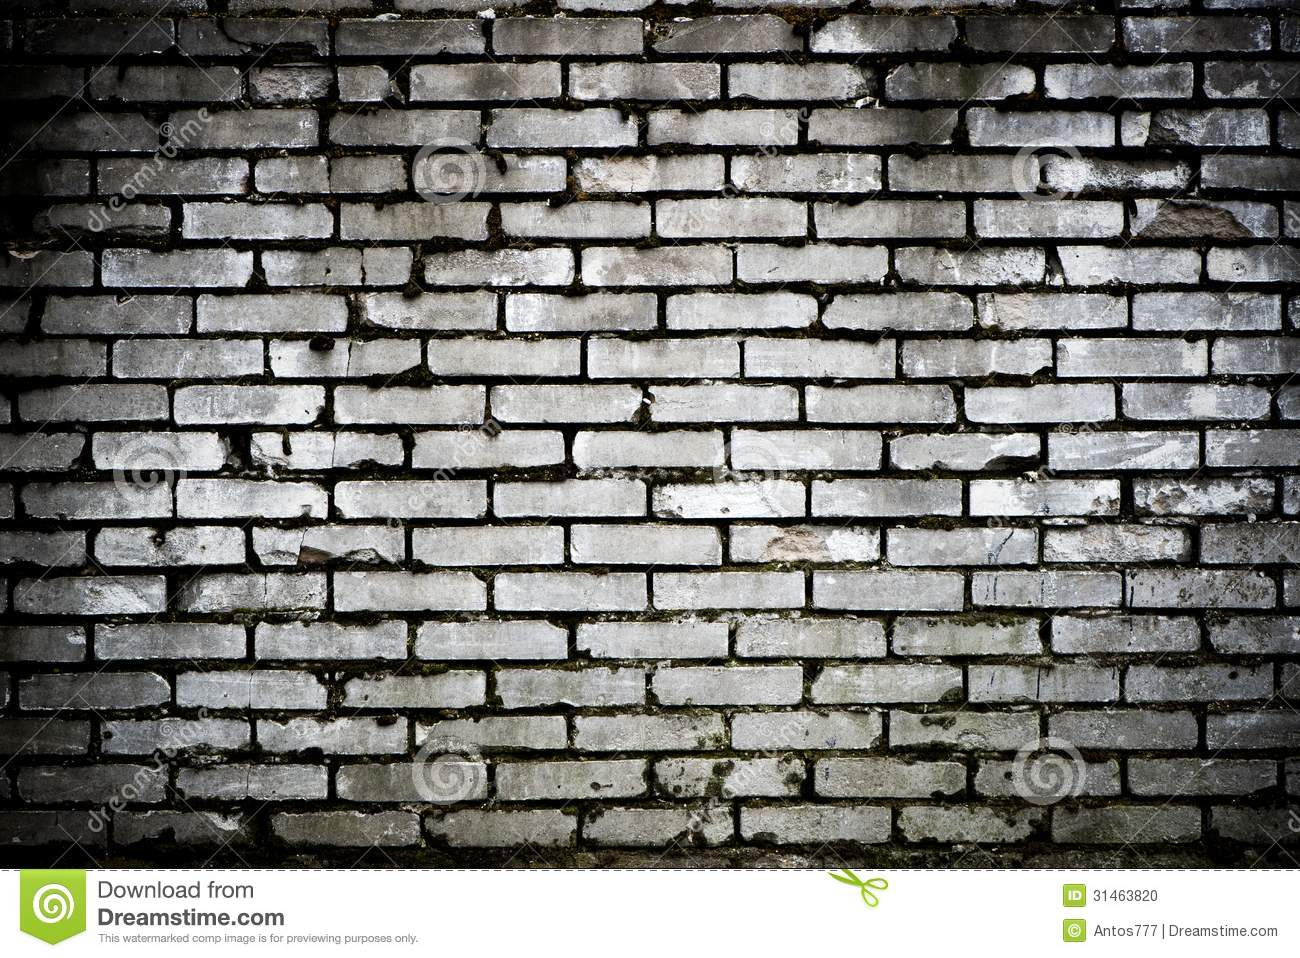 Brick Black And White Clipart Wall Background Stock Photo Image 31463820